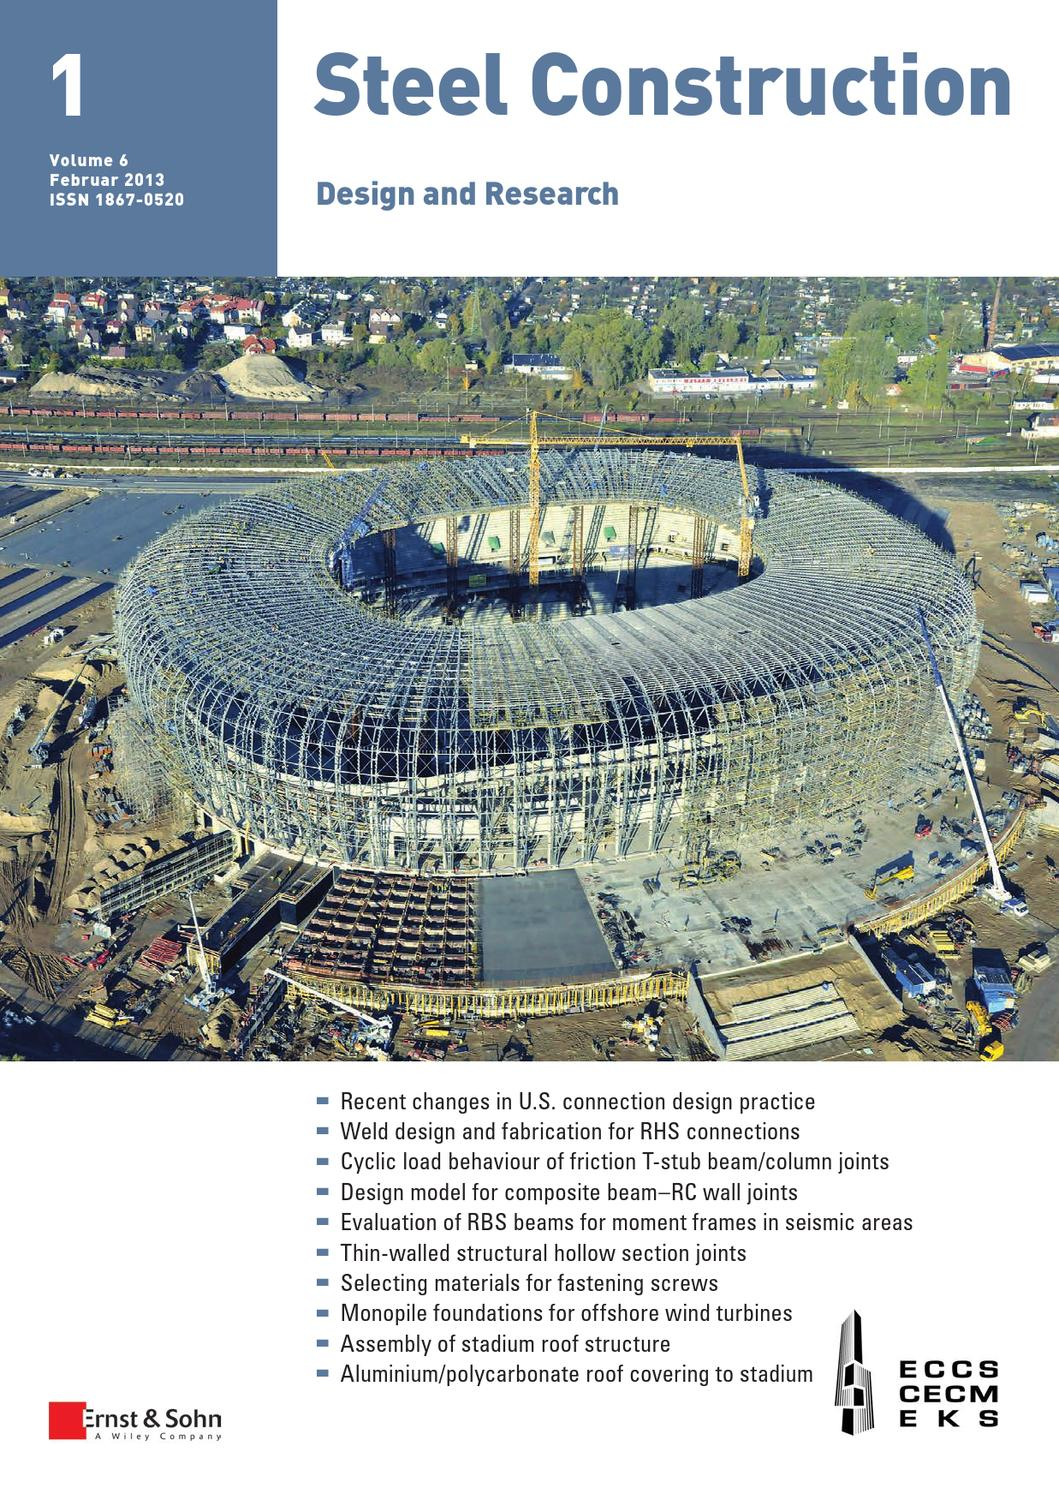 Steel Construction 01 2013 Free Sample Copy By Ernst